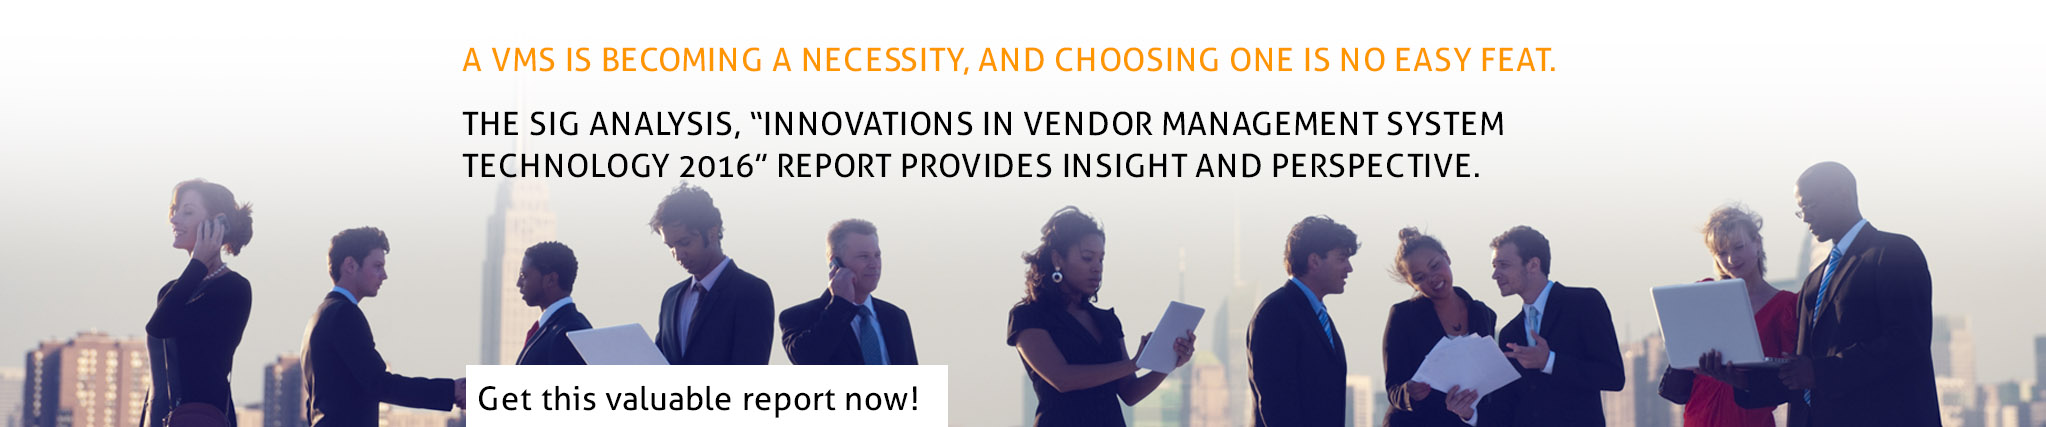 Innovations in Vendor Management System Technology